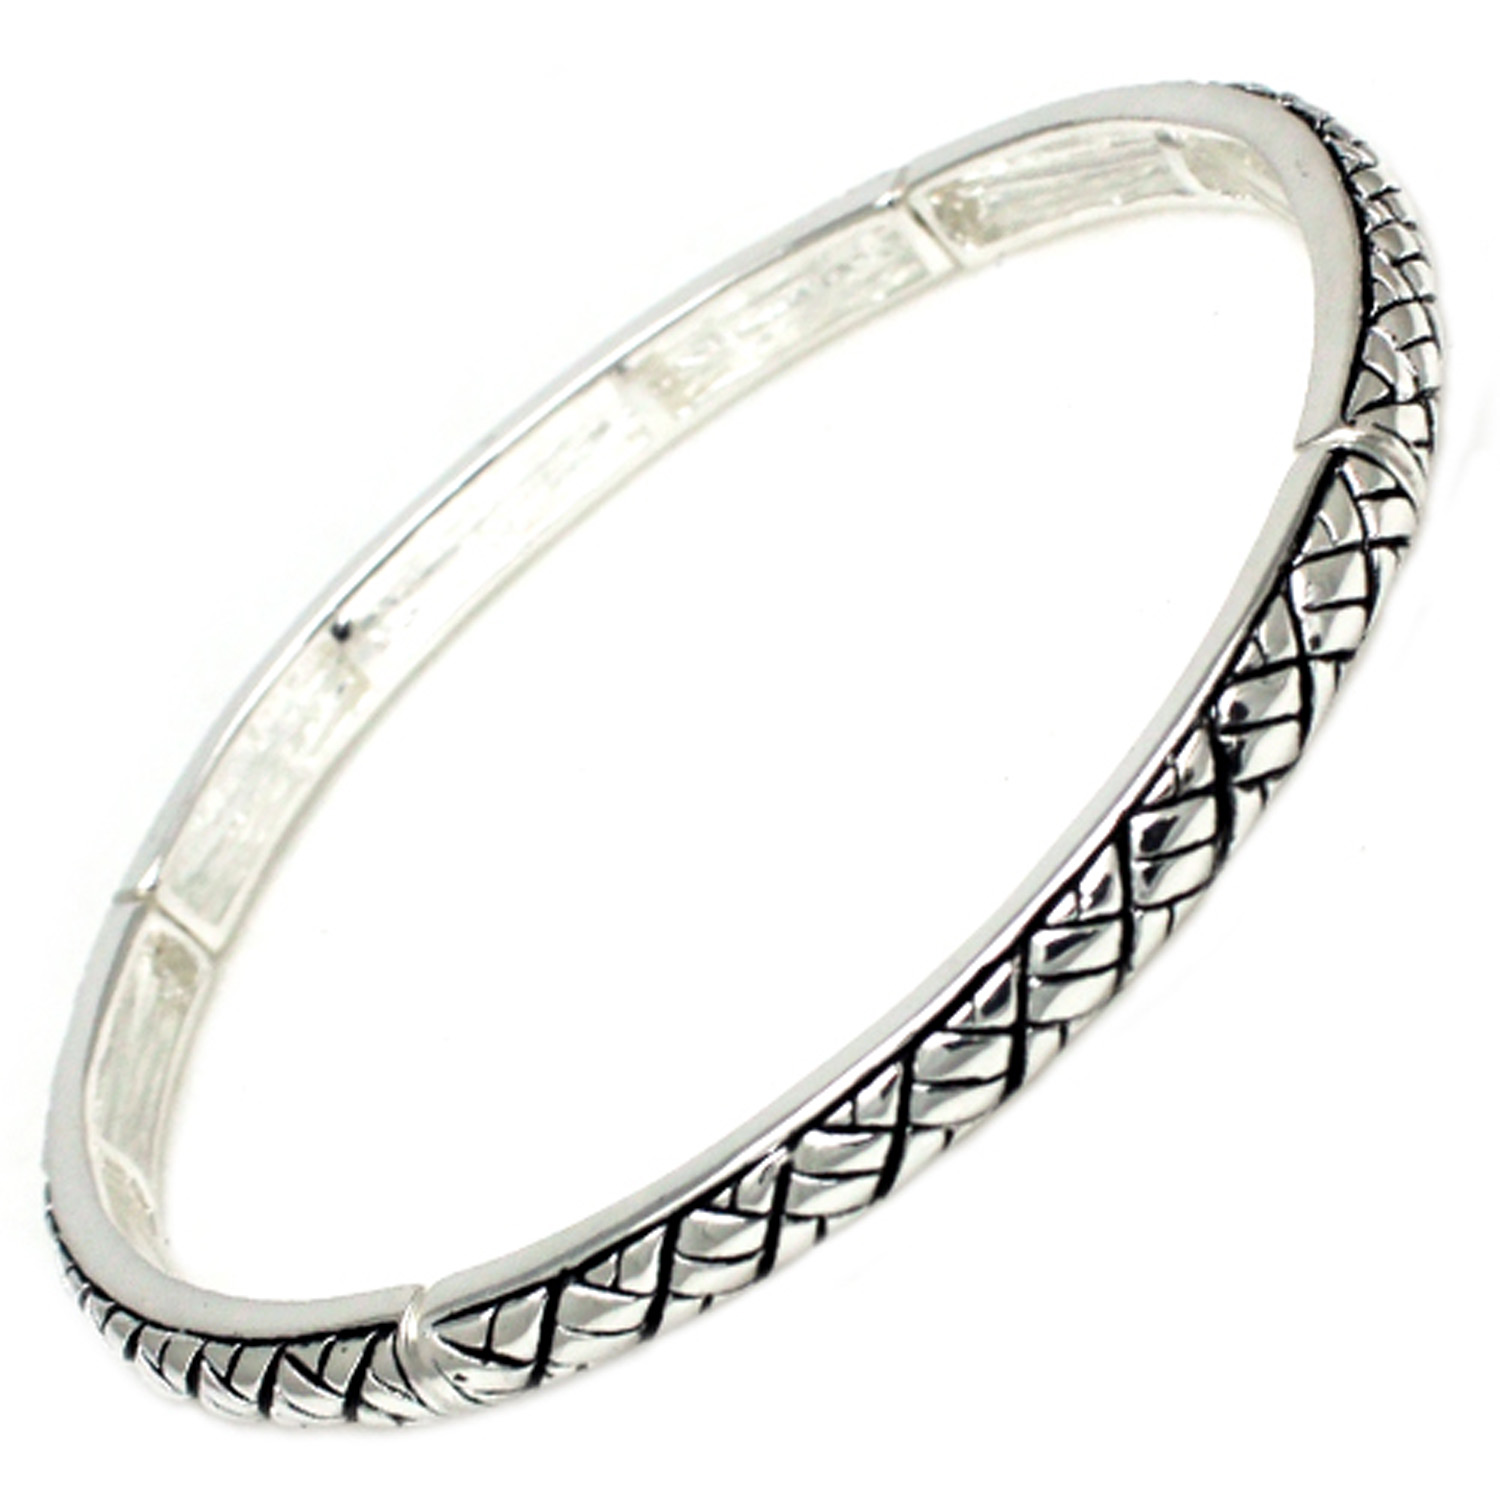 Antique Silver Plated Wheat Braid DesignB rass BANGLE Bracelet